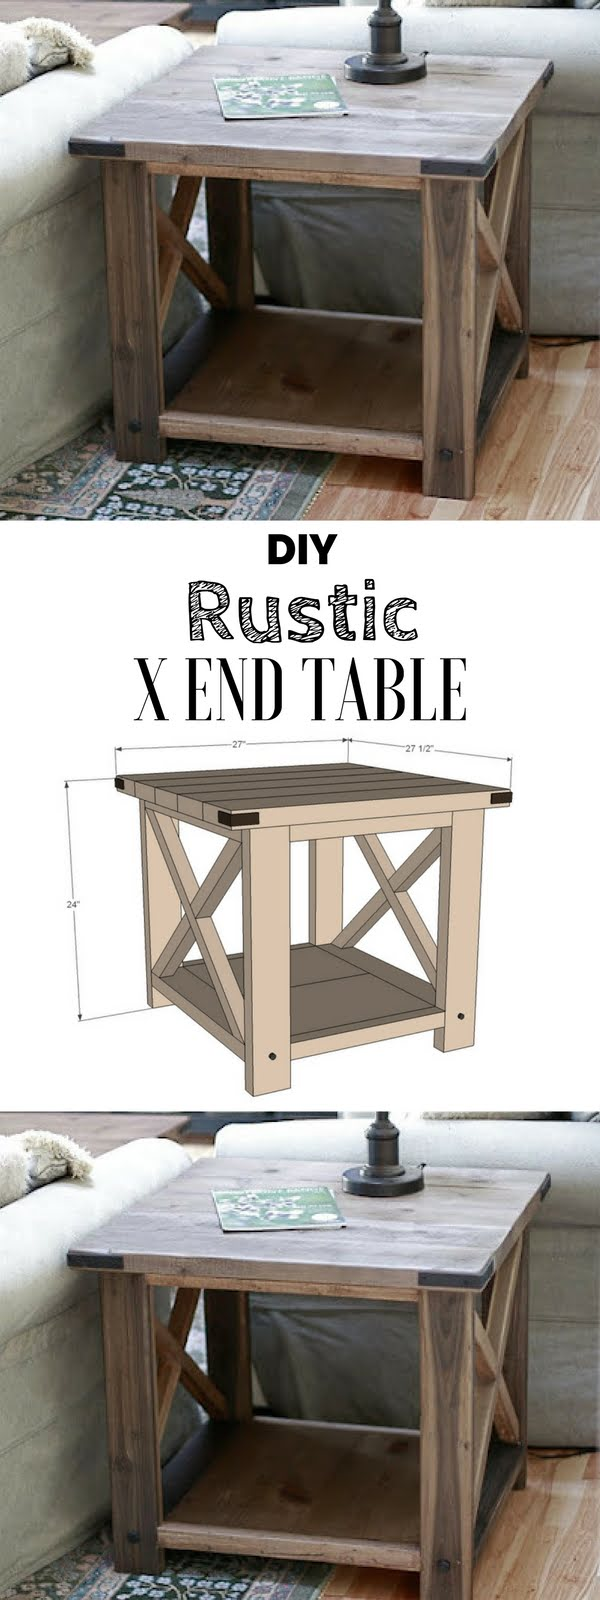 Check out the tutorial for an easy rustic DIY end table